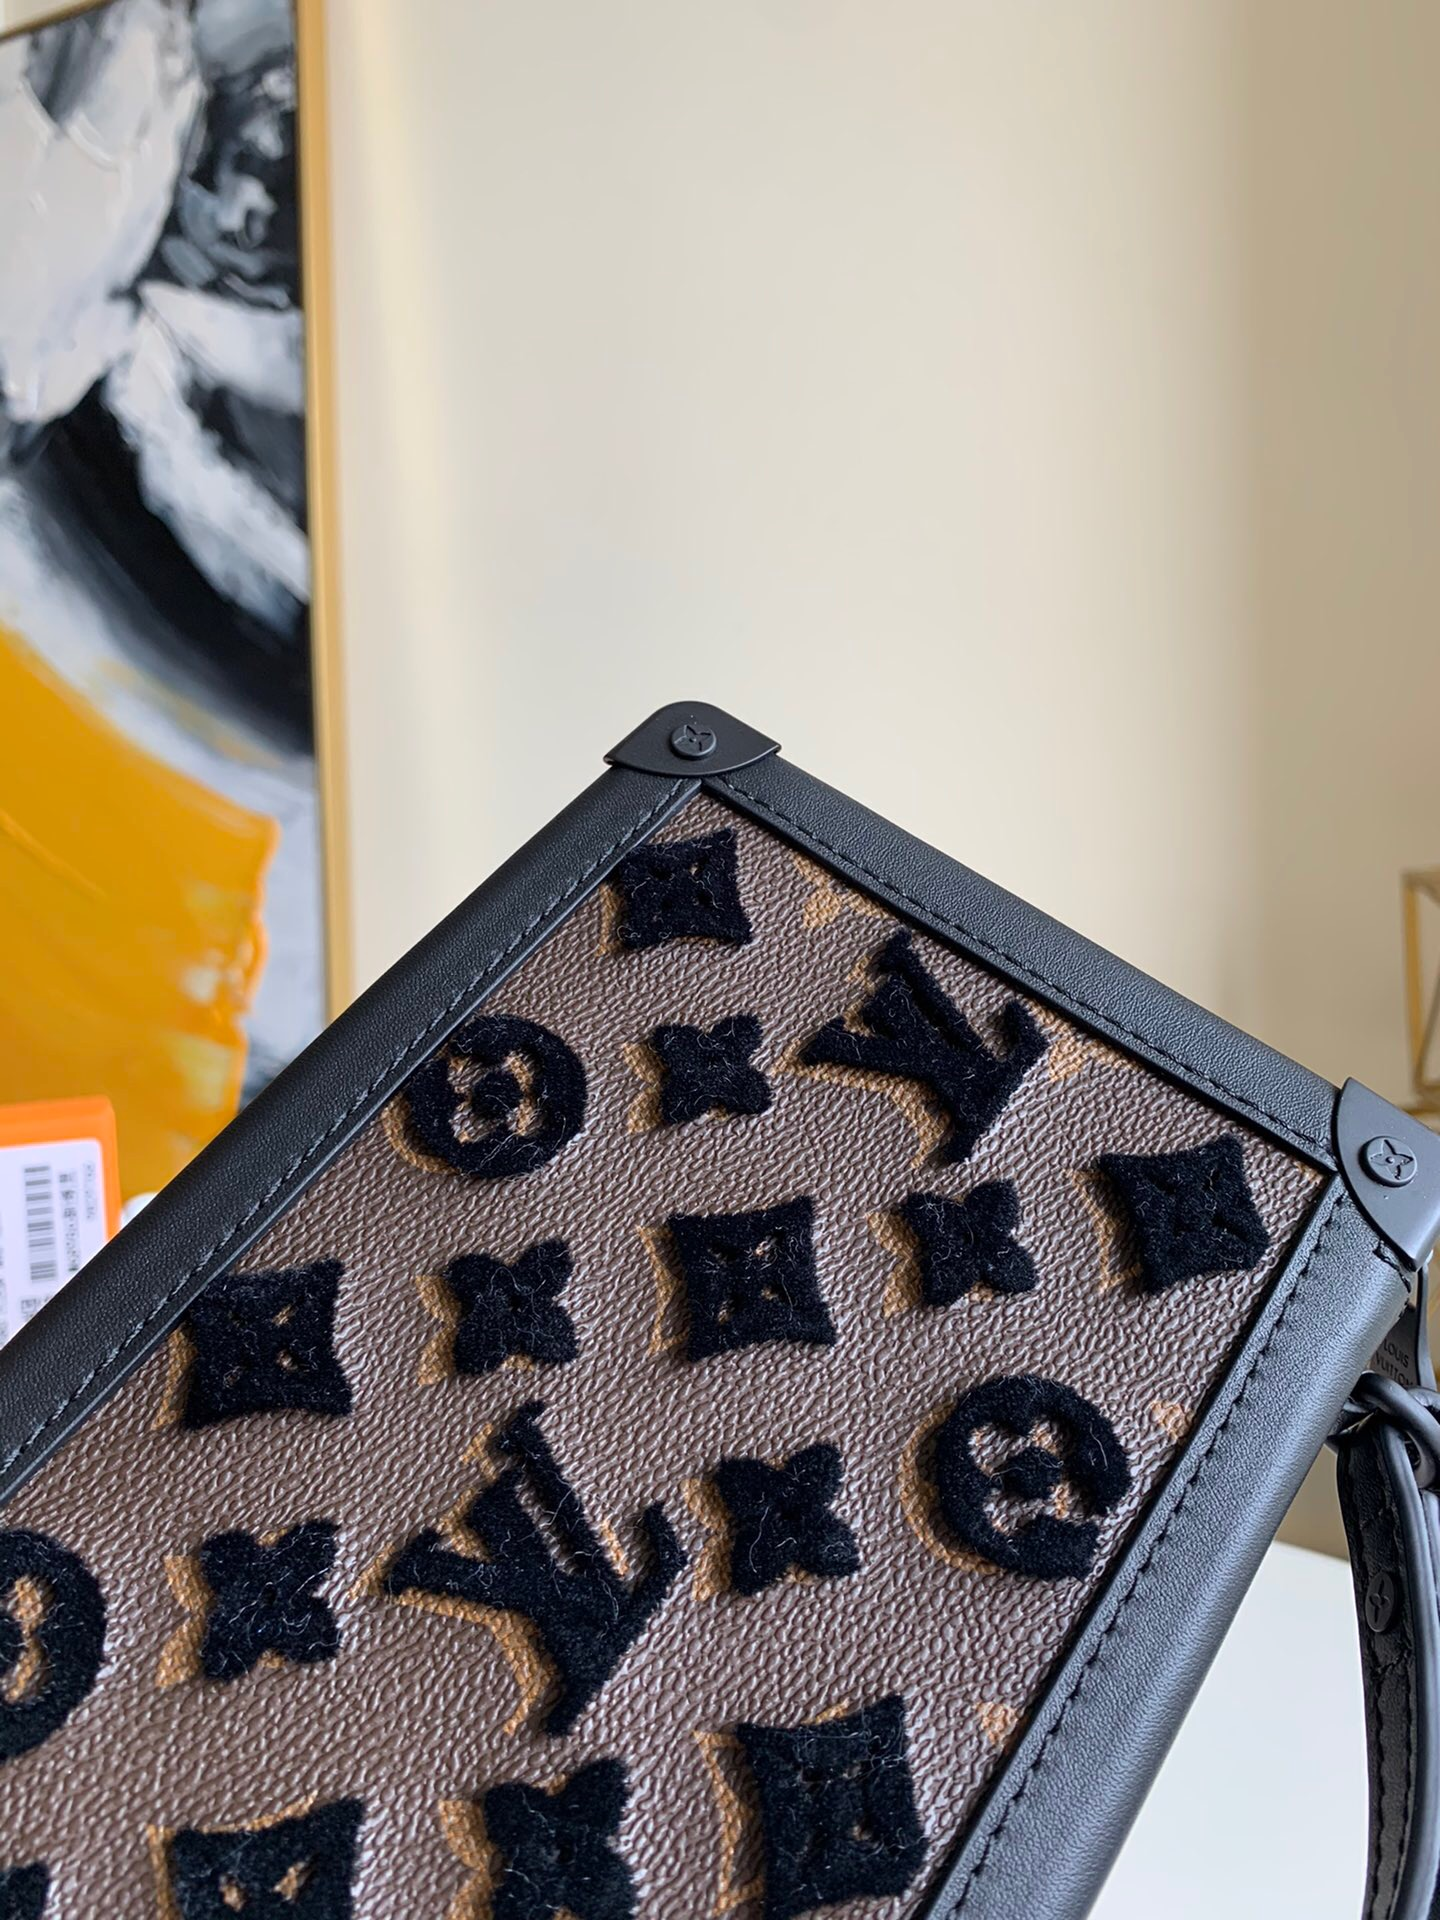 LV M45061 POCHETTE SOFT TRUNK 立体刺绣手拿包